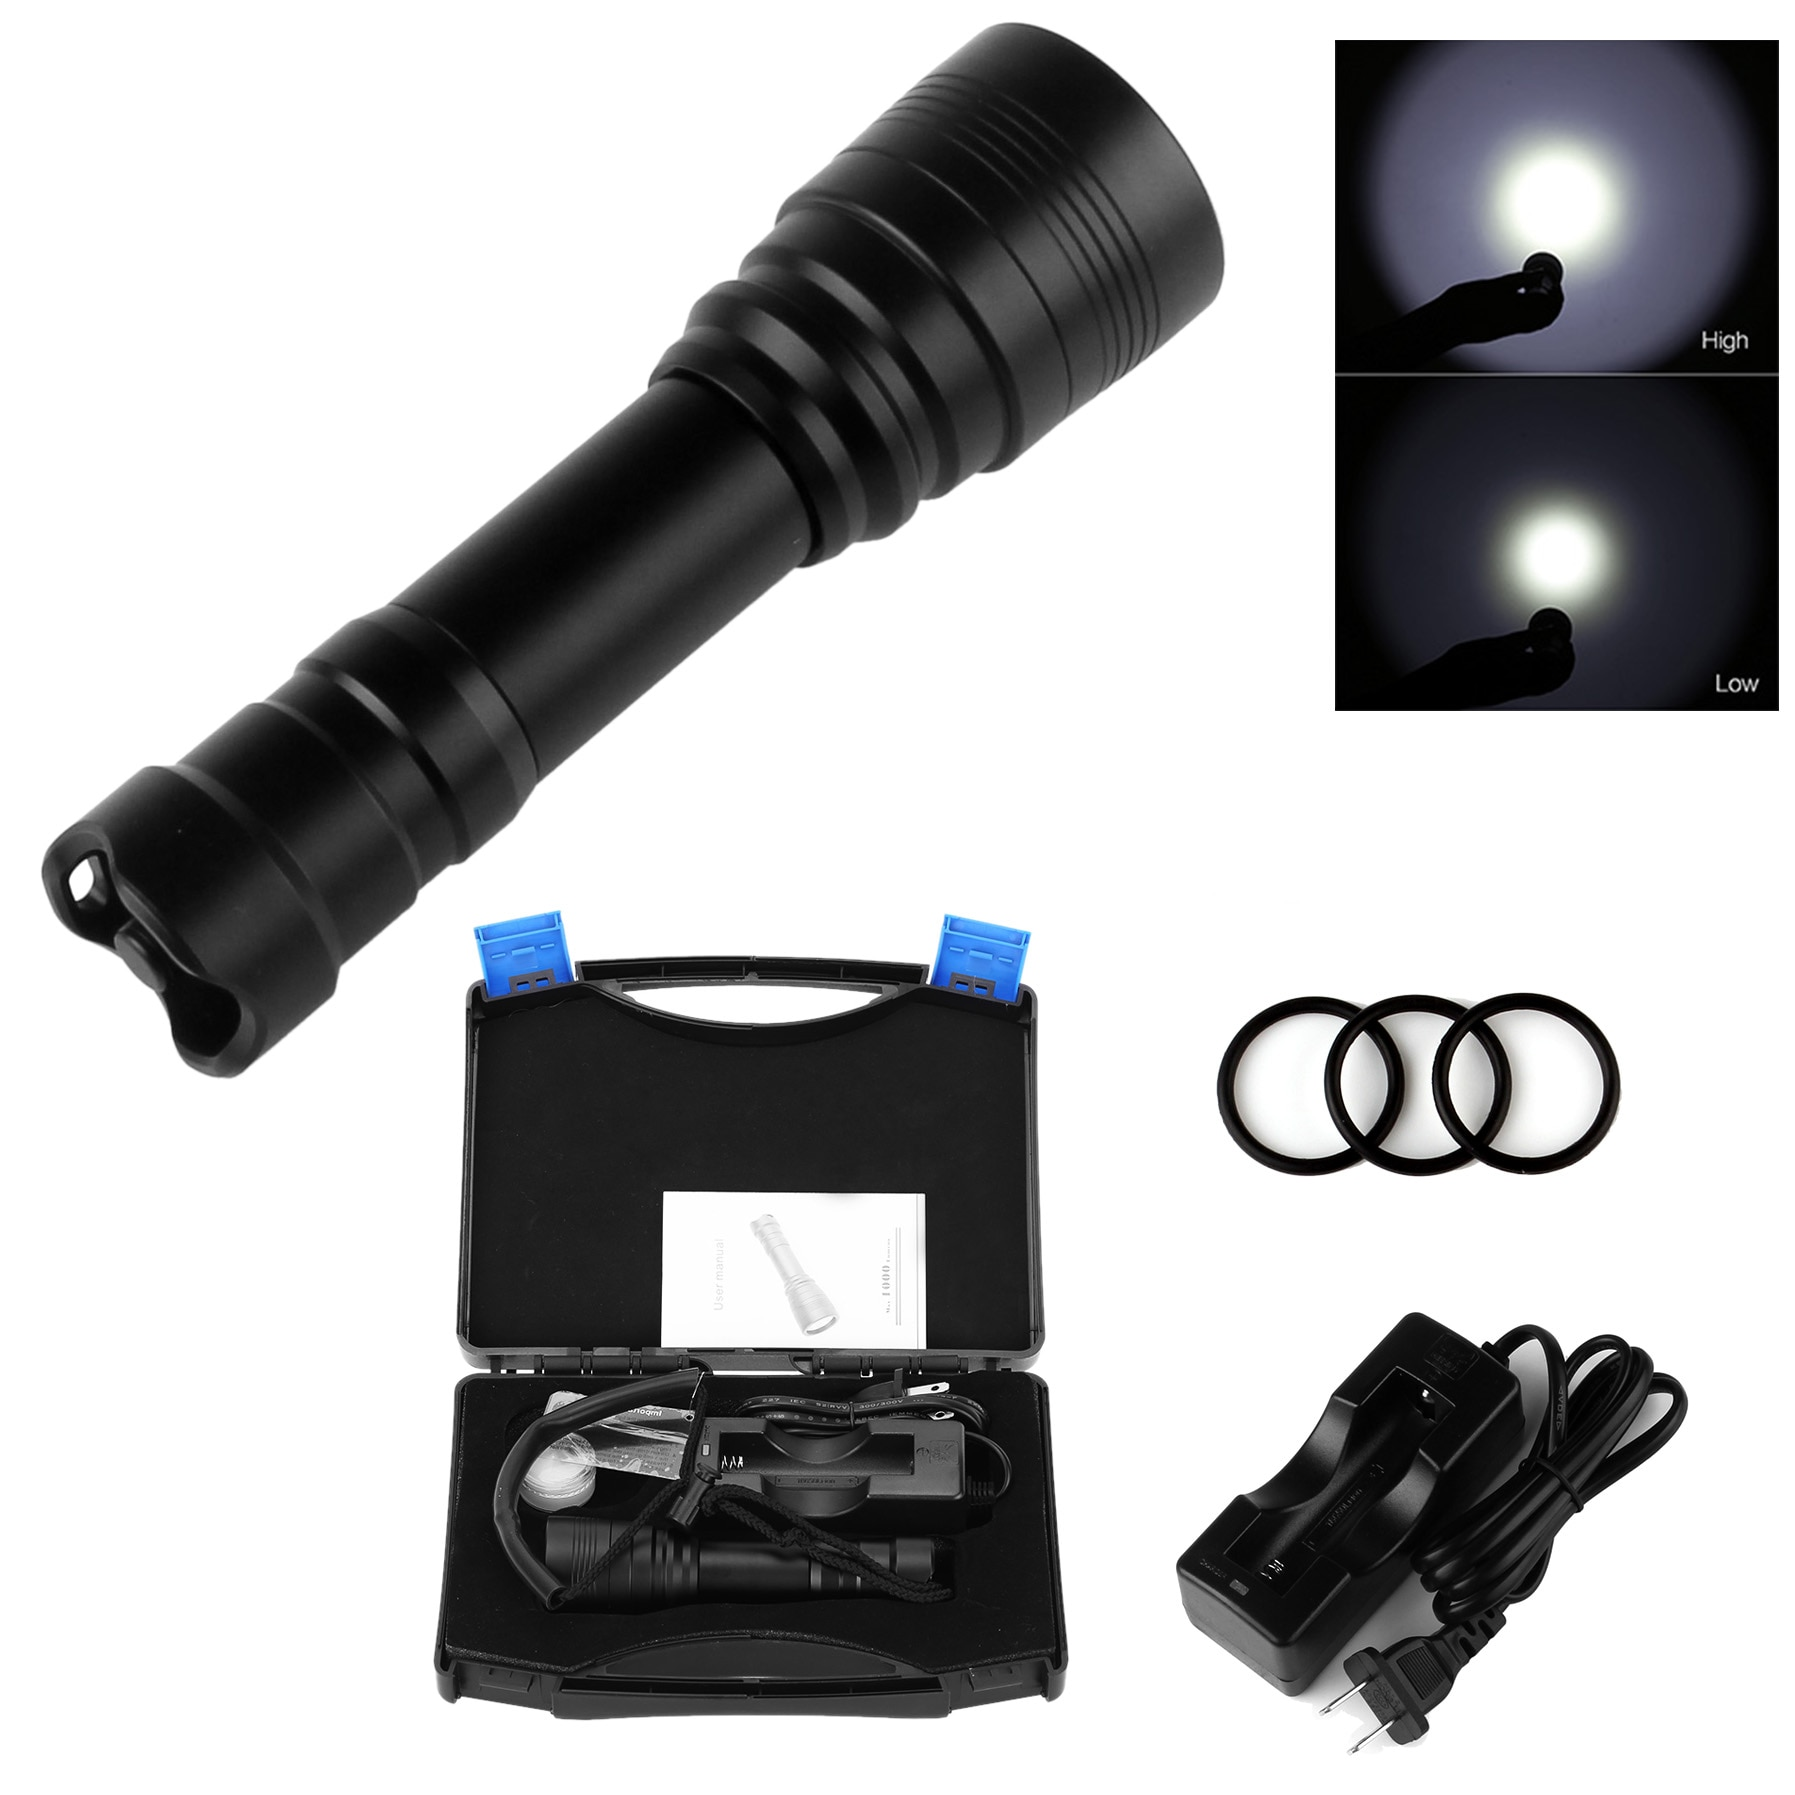 SecurityIng Dive Flashlight Waterproof High Power Underwater 150m Handheld Diving Flashlight Lamp Torch18650 Battery Charger enlarge